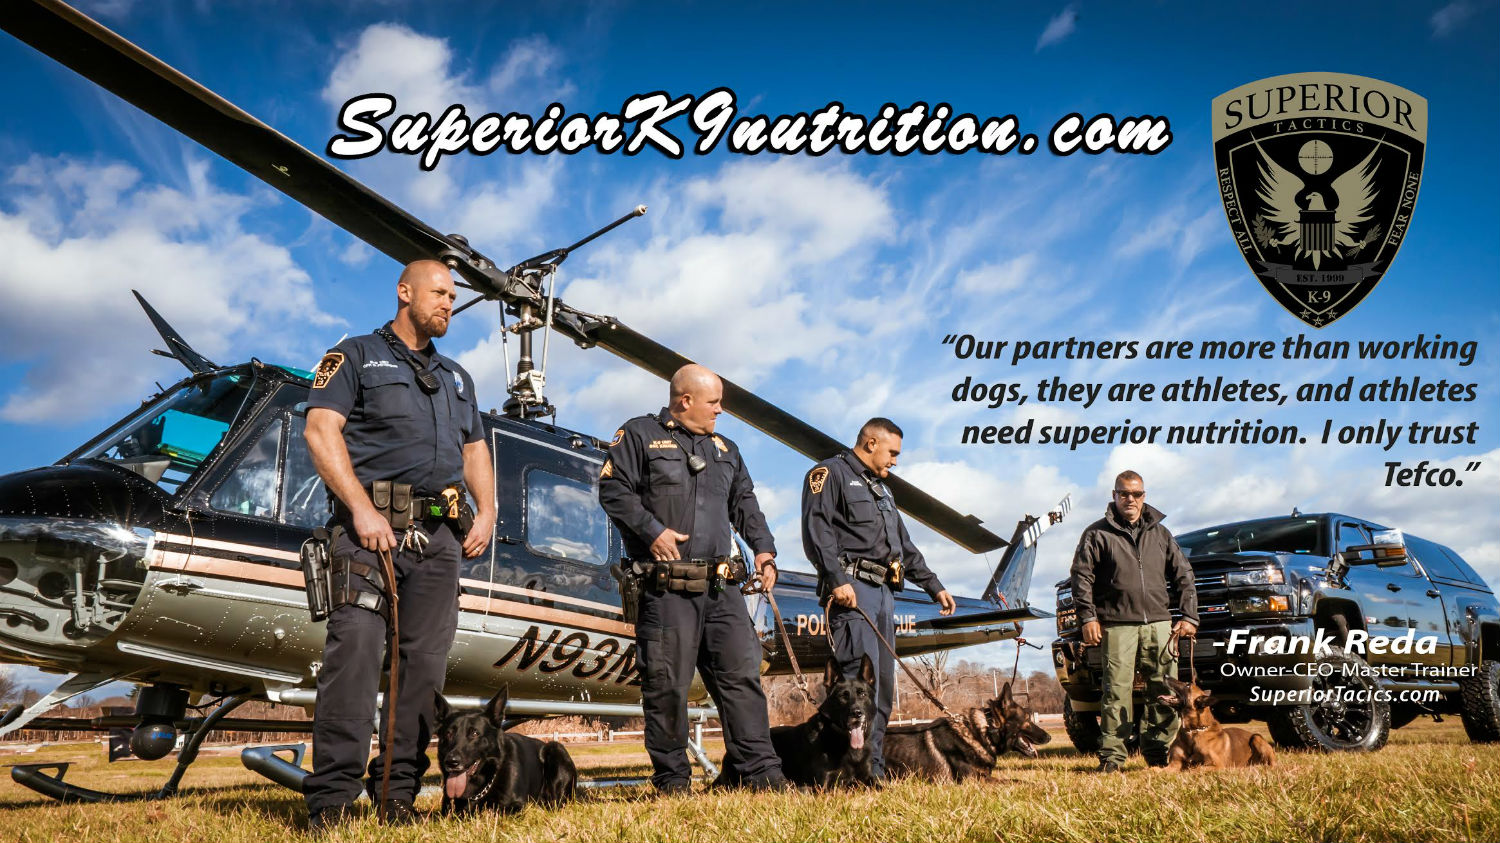 Purchase Raw Dog Food at Superior K-9 Nutrition